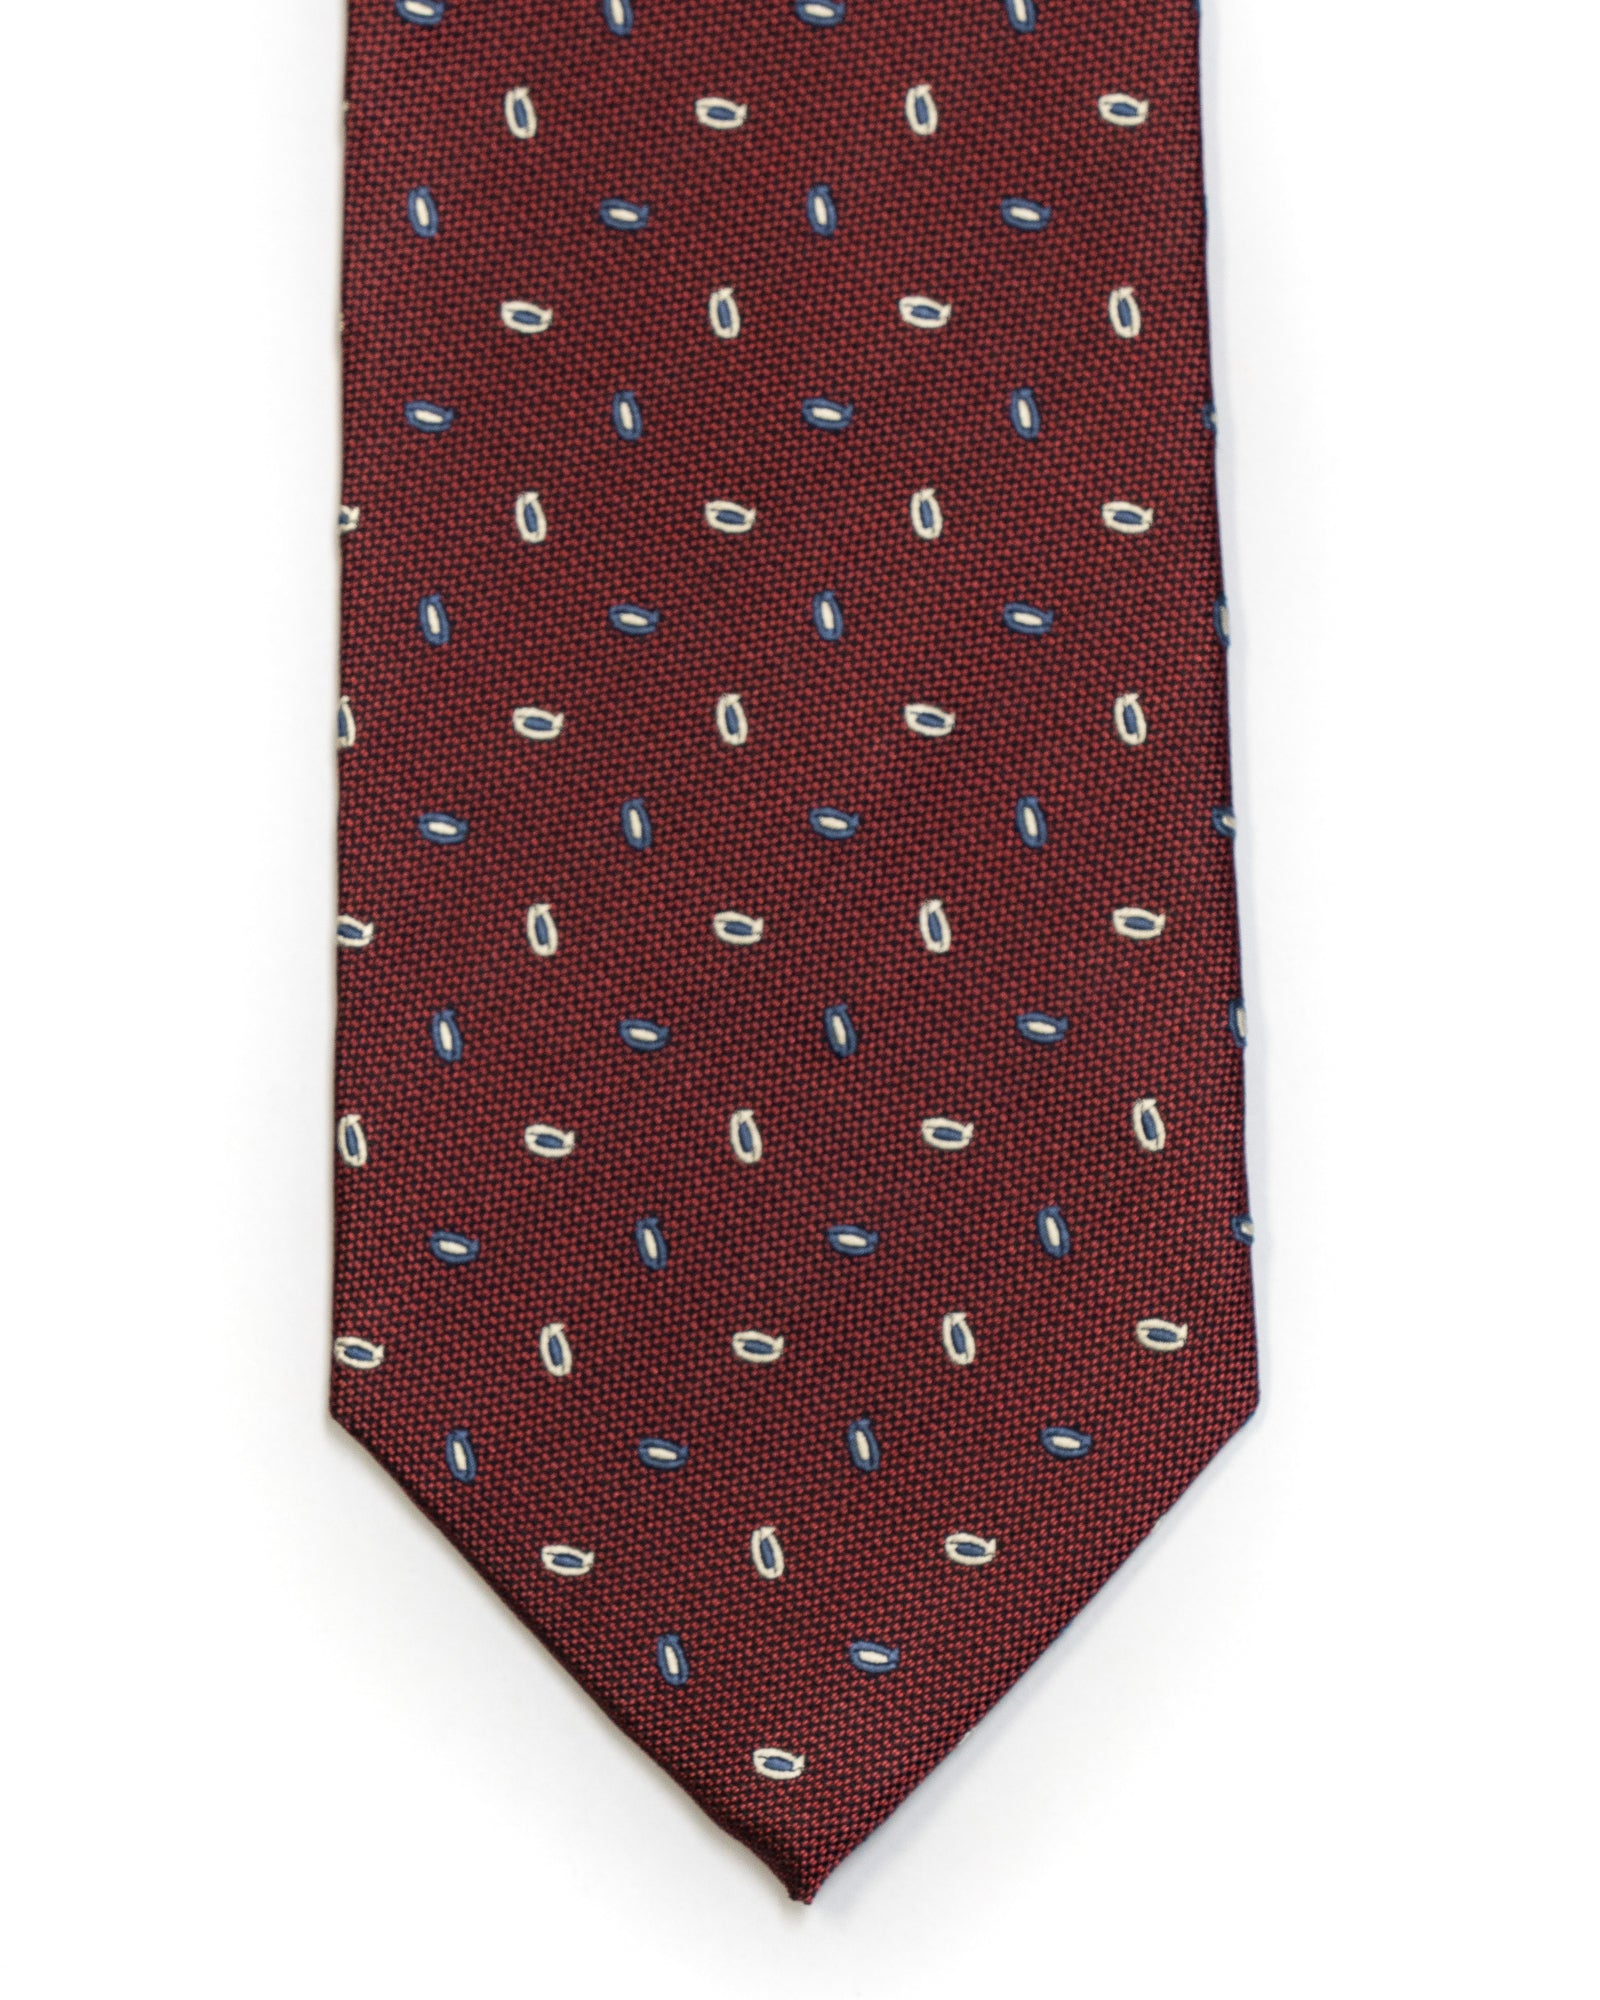 Silk Tie in Burgundy And Navy Foulard Print - Rainwater's Men's Clothing and Tuxedo Rental